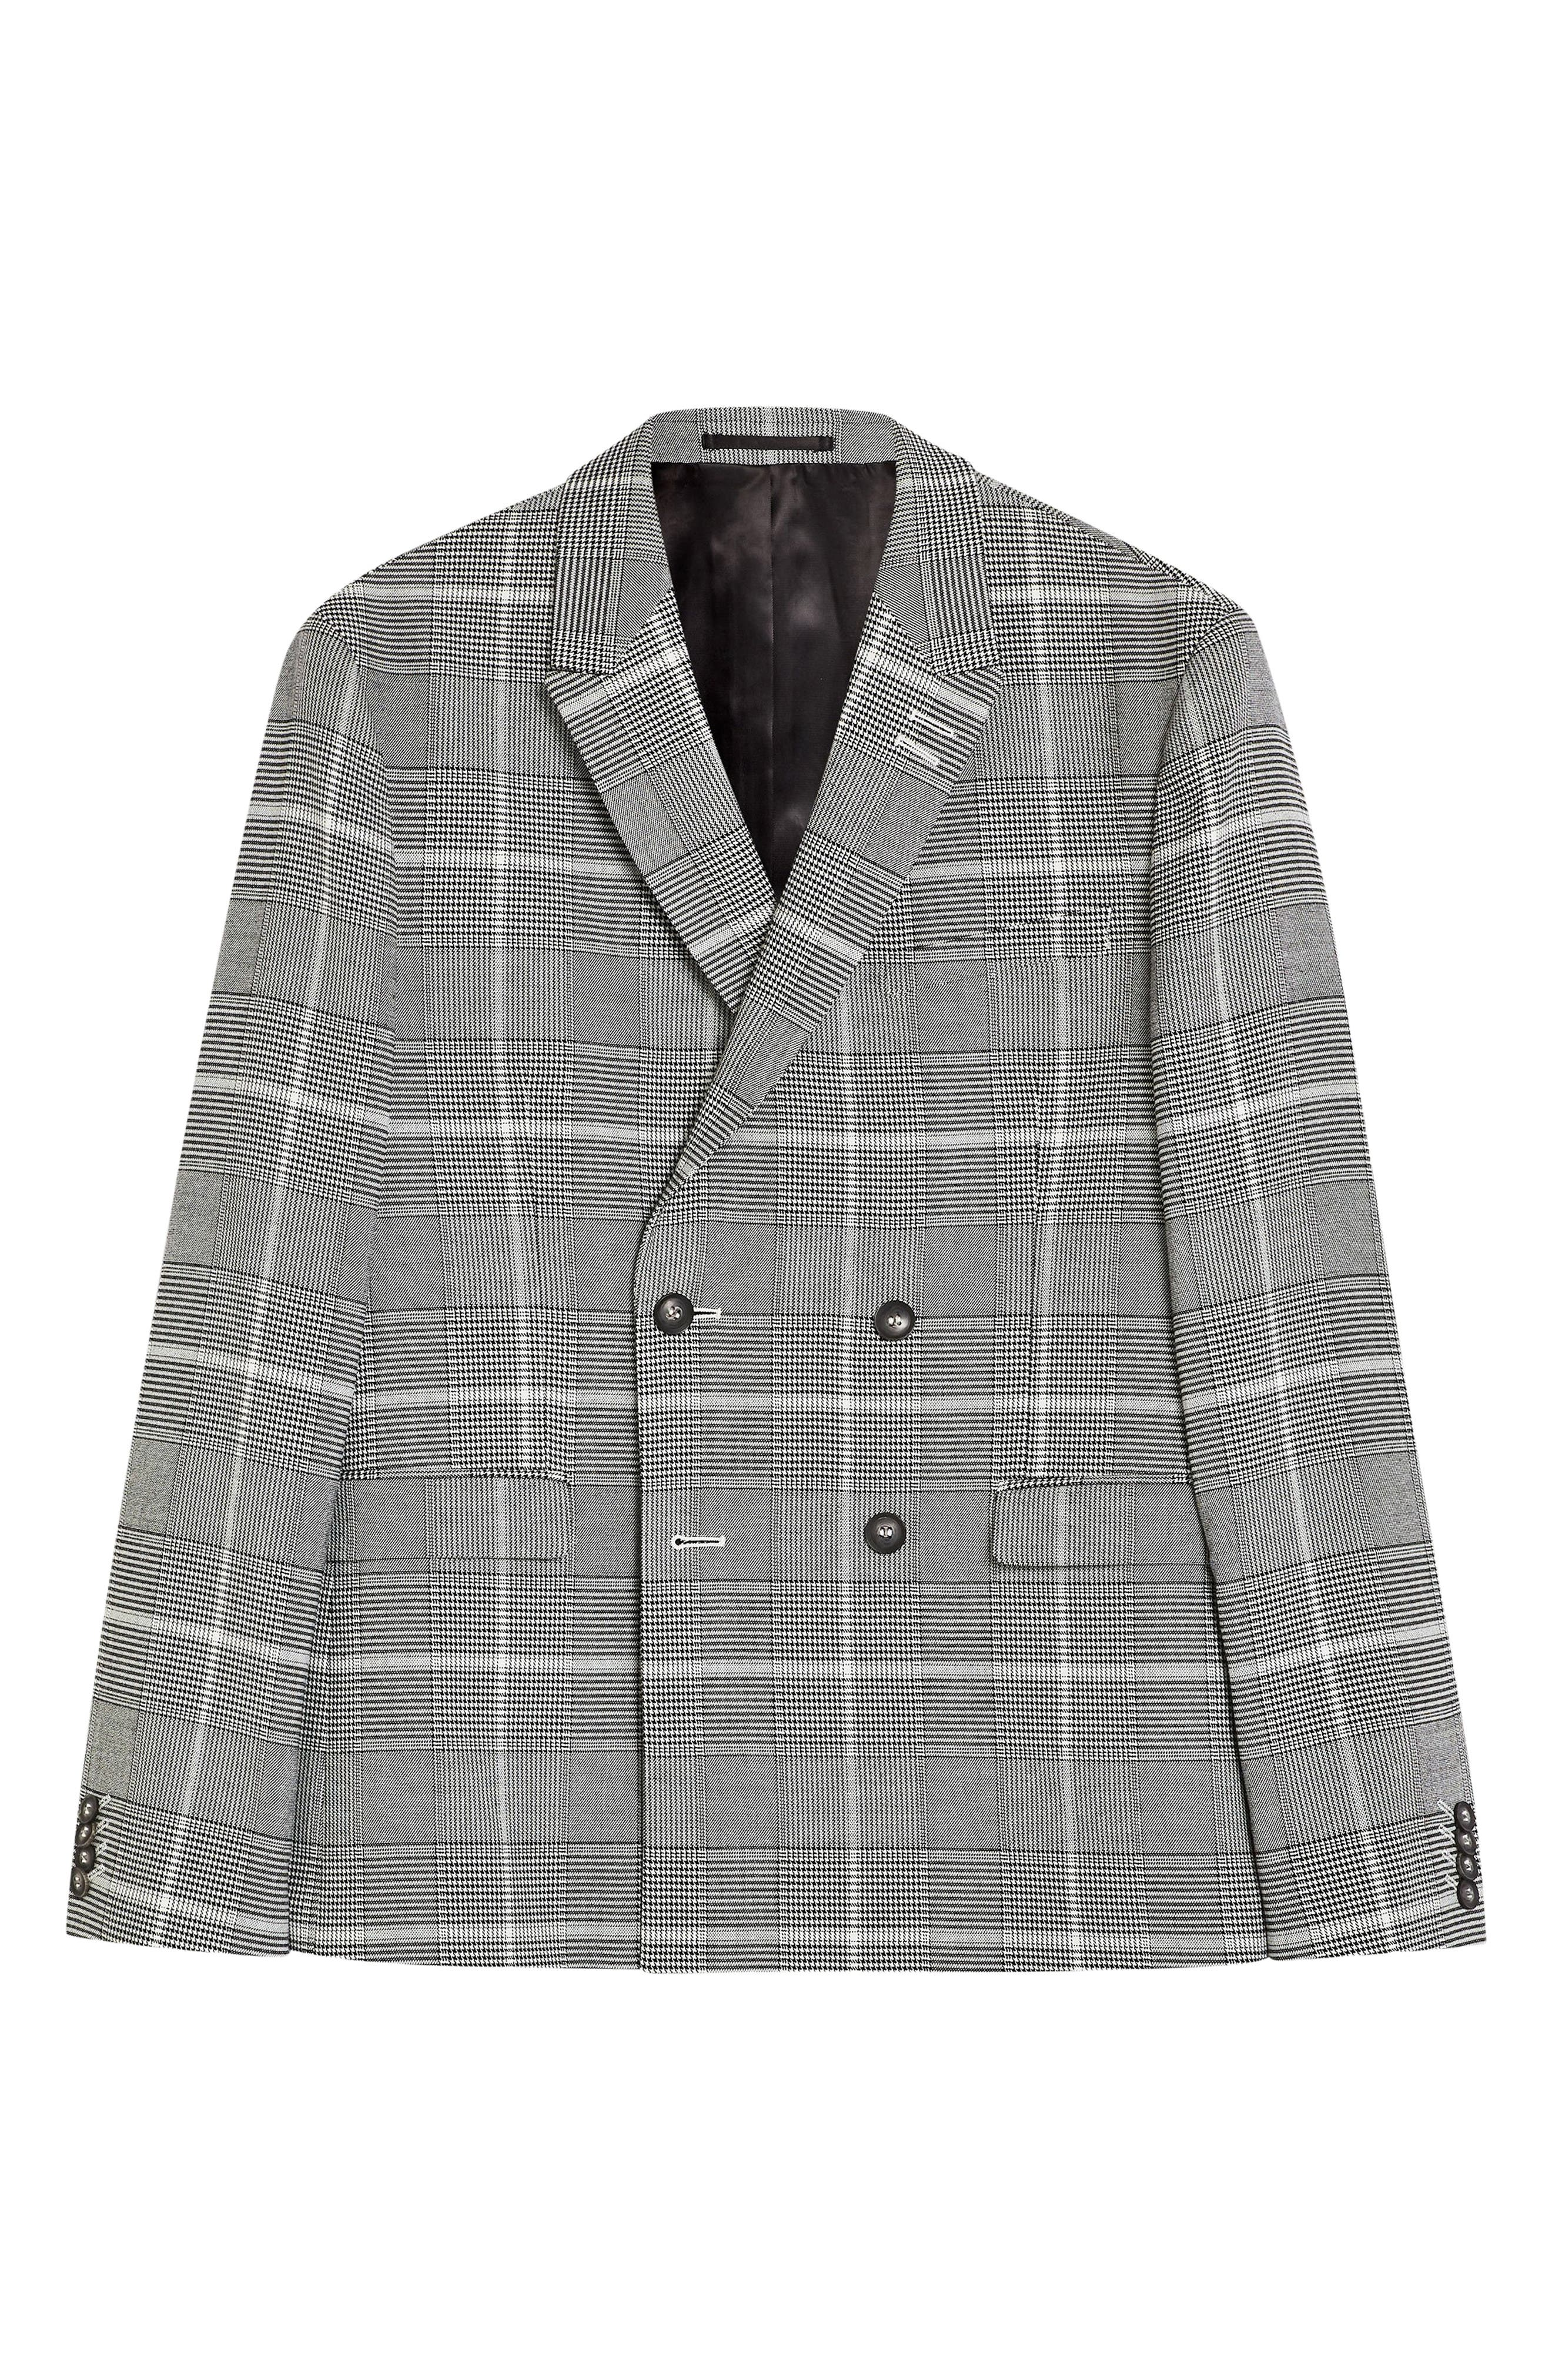 TOPMAN, Skinny Fit Check Suit Jacket, Alternate thumbnail 4, color, 020